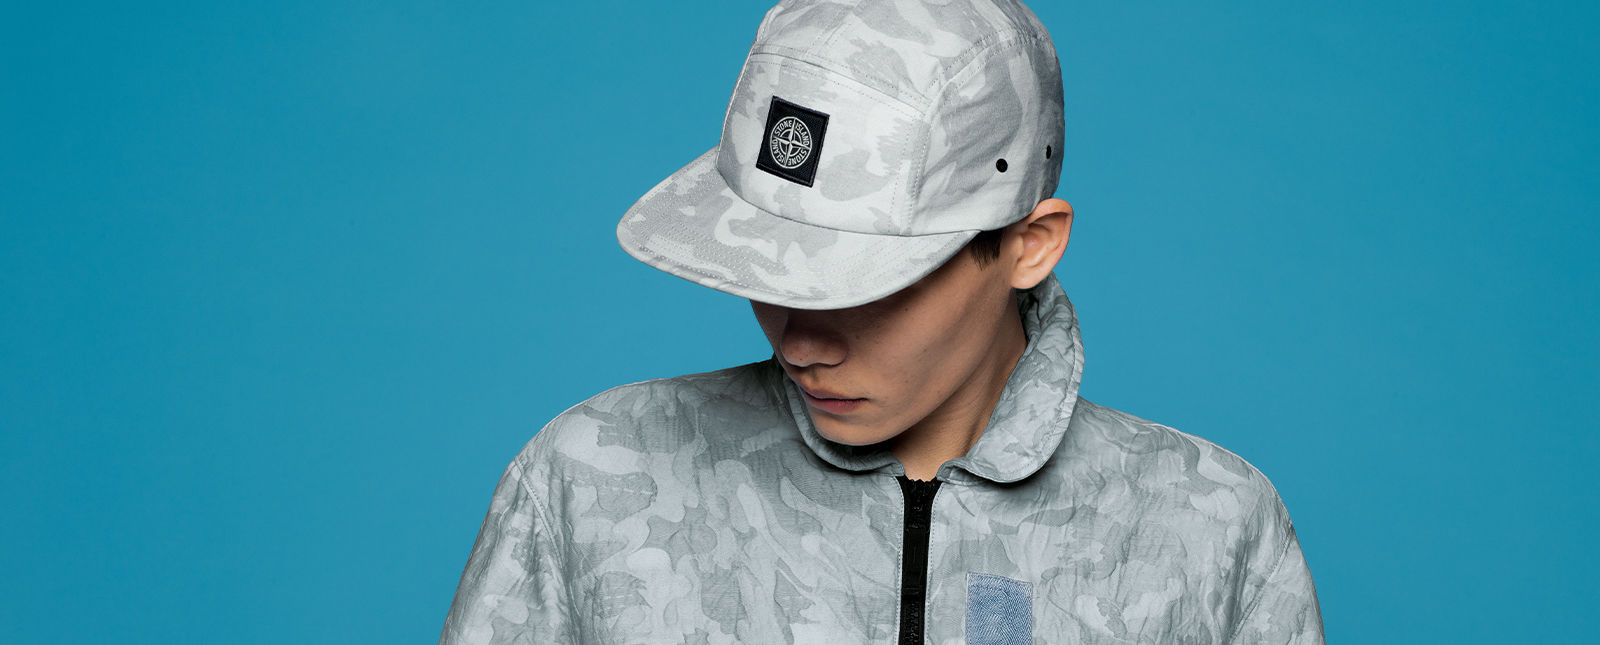 Model wearing light gray camouflage print baseball cap with the Stone Island patch on the front and matching jacket with black zipper closure.